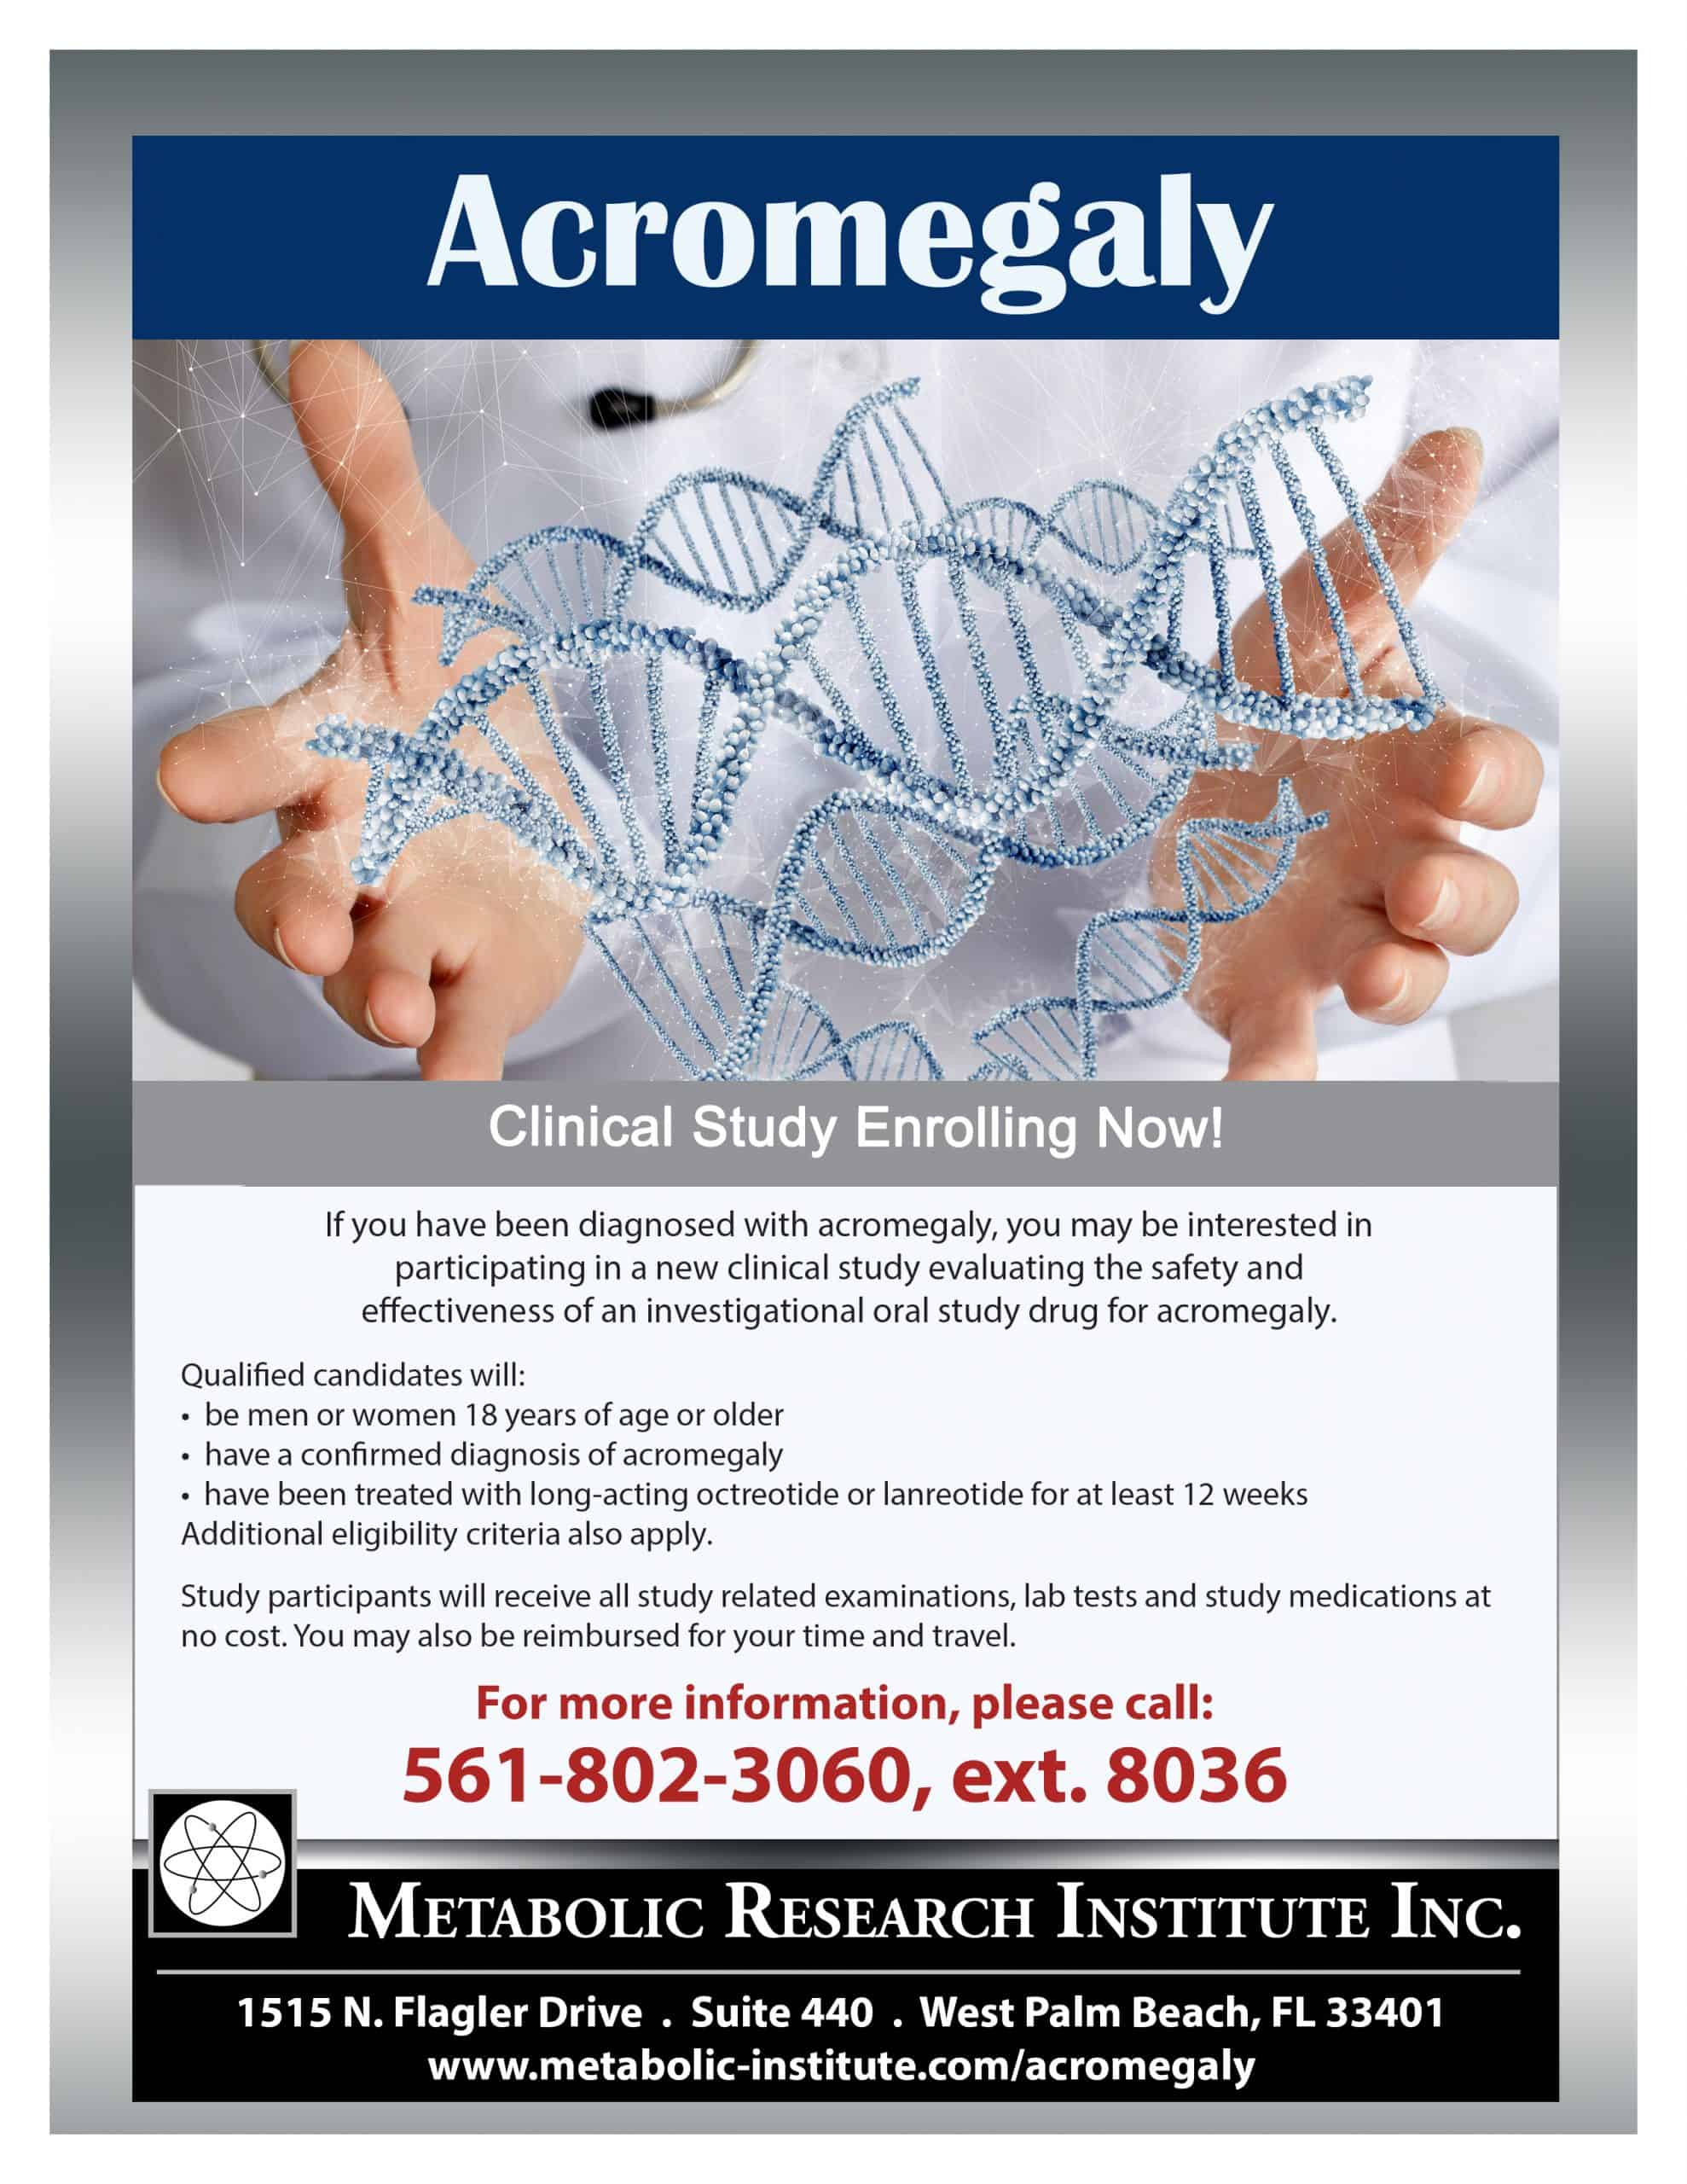 Acromegaly Clinical Study Flyer